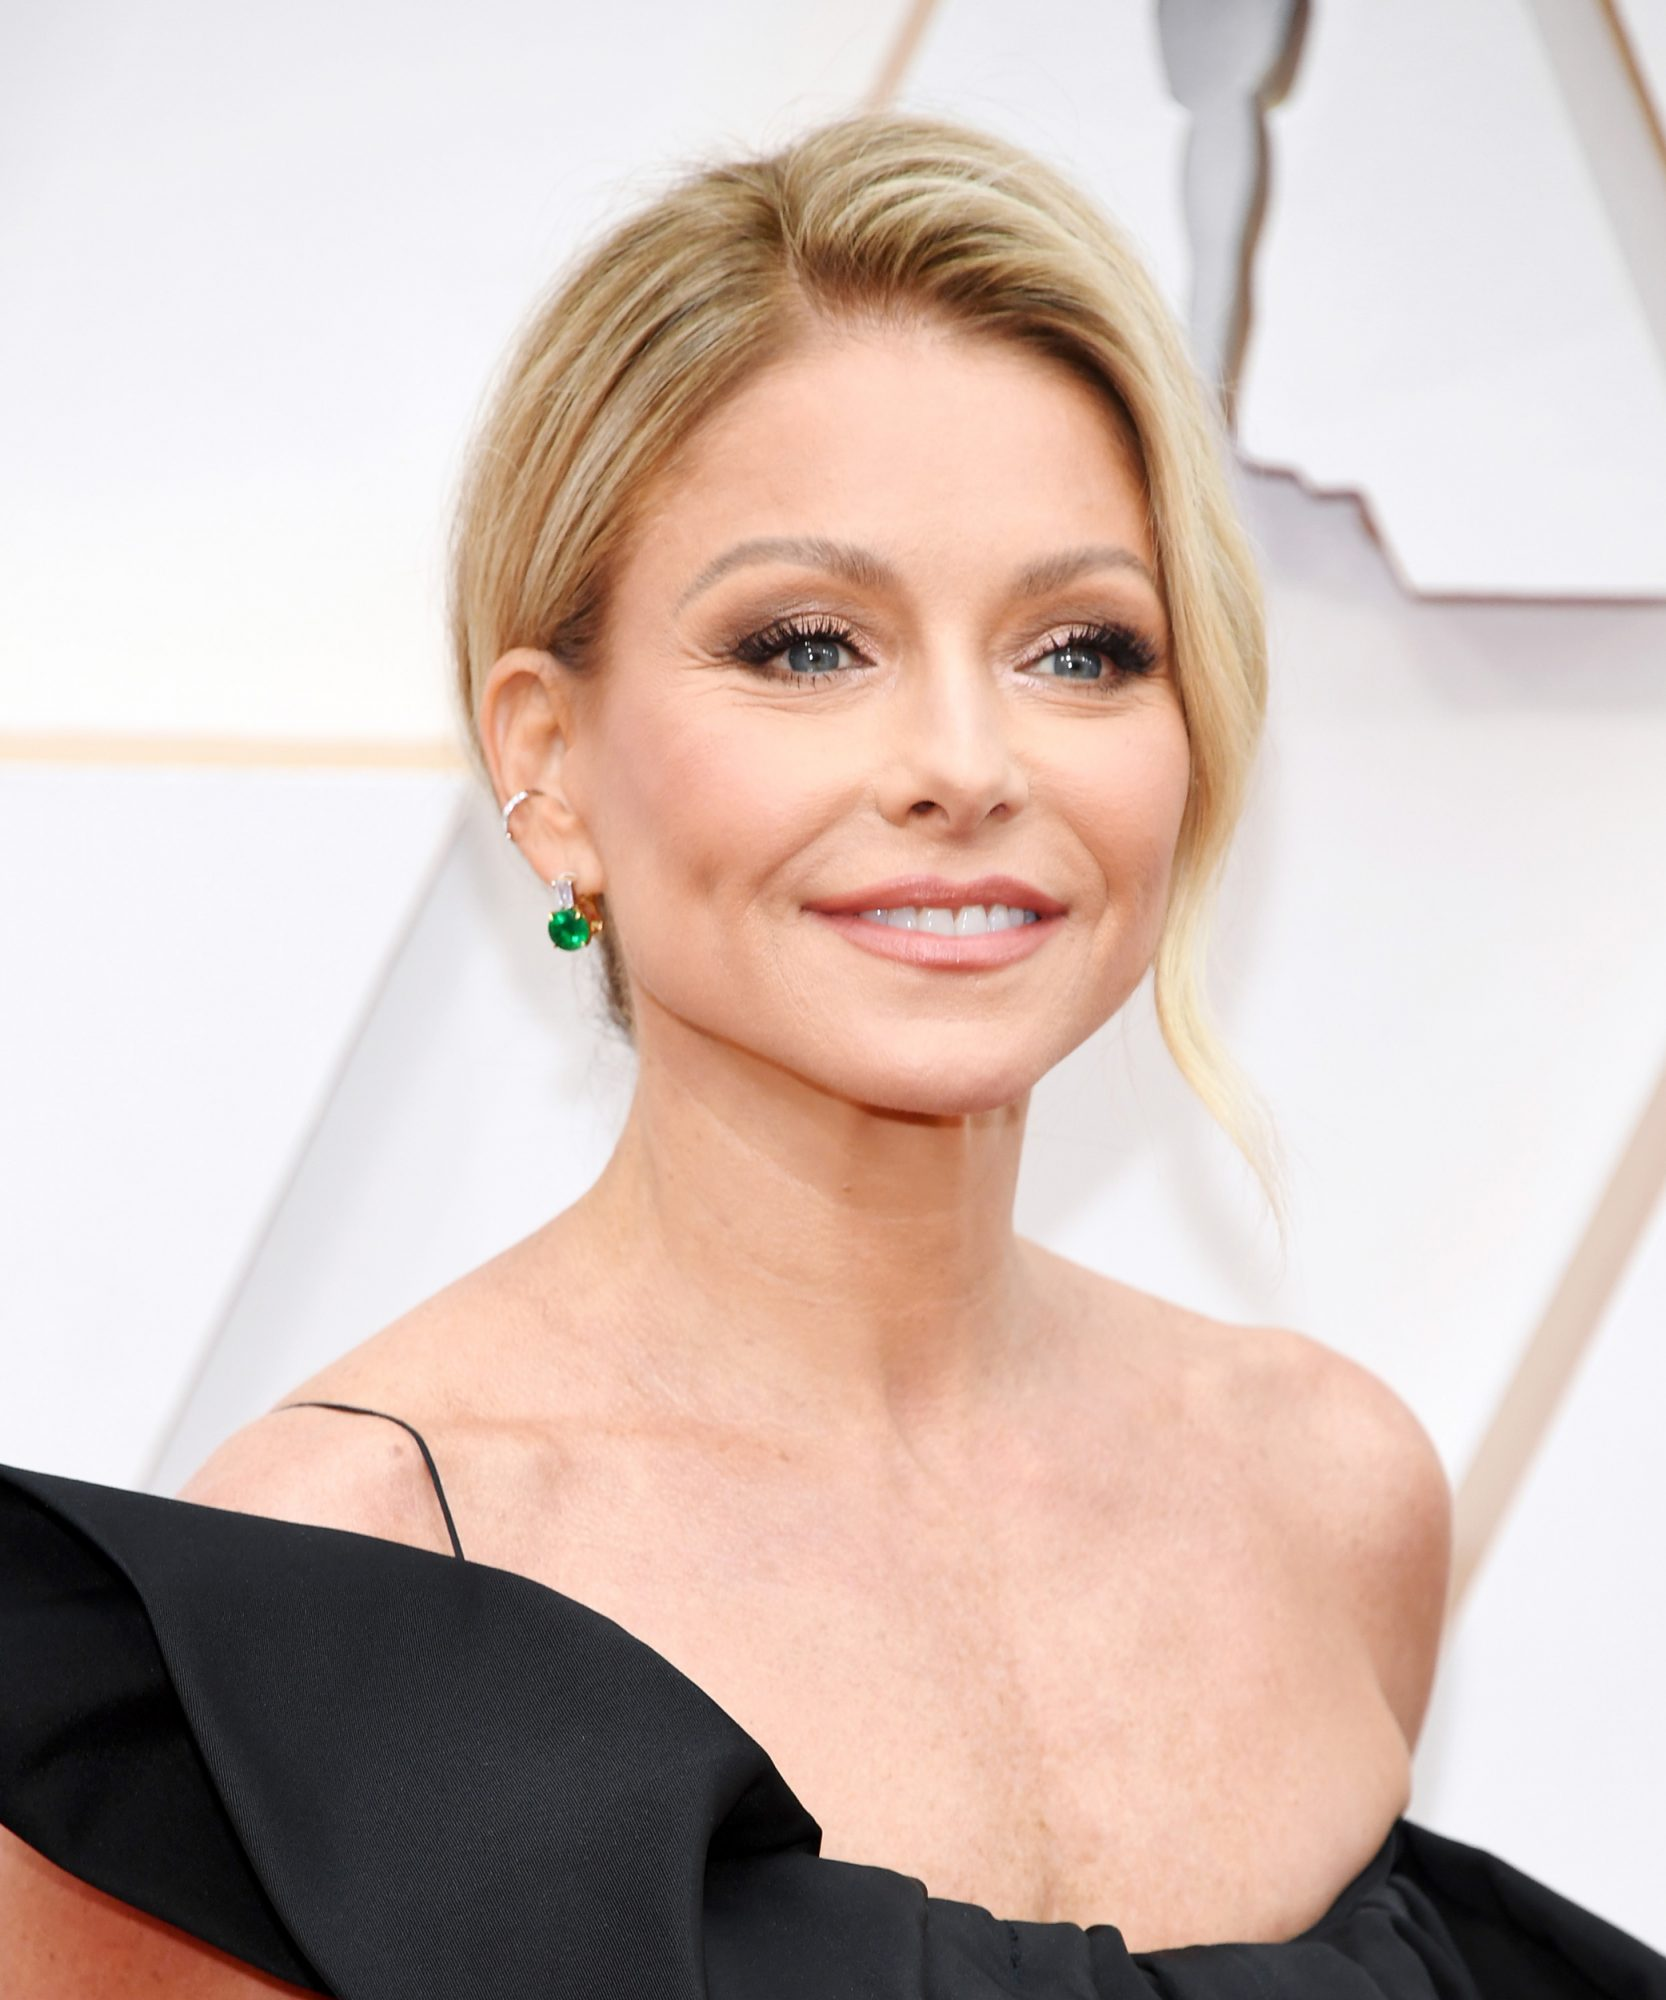 Kelly Ripa uses this spray to cover her gray roots